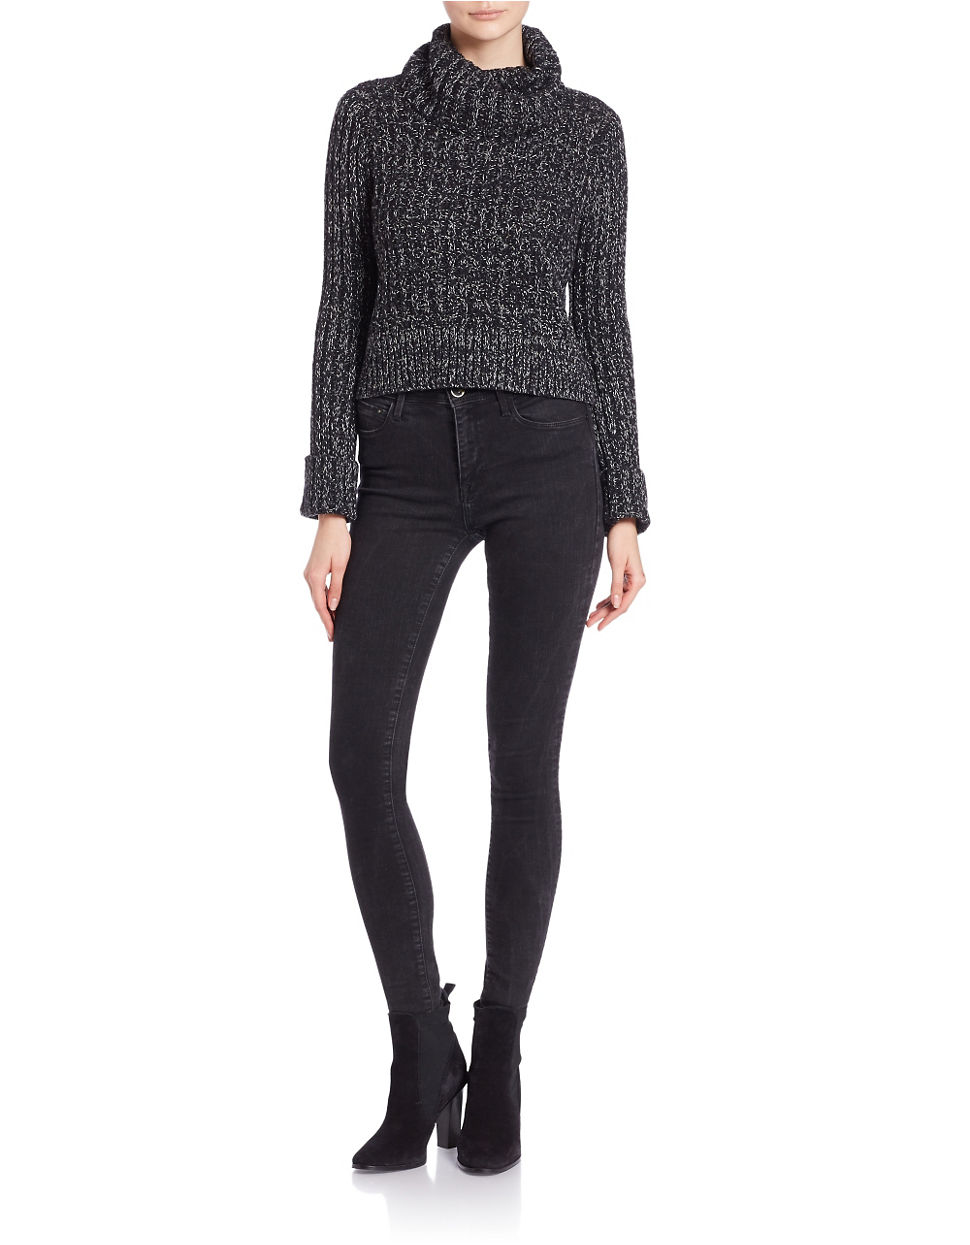 Free people Cropped Knit Turtleneck Sweater in Black | Lyst